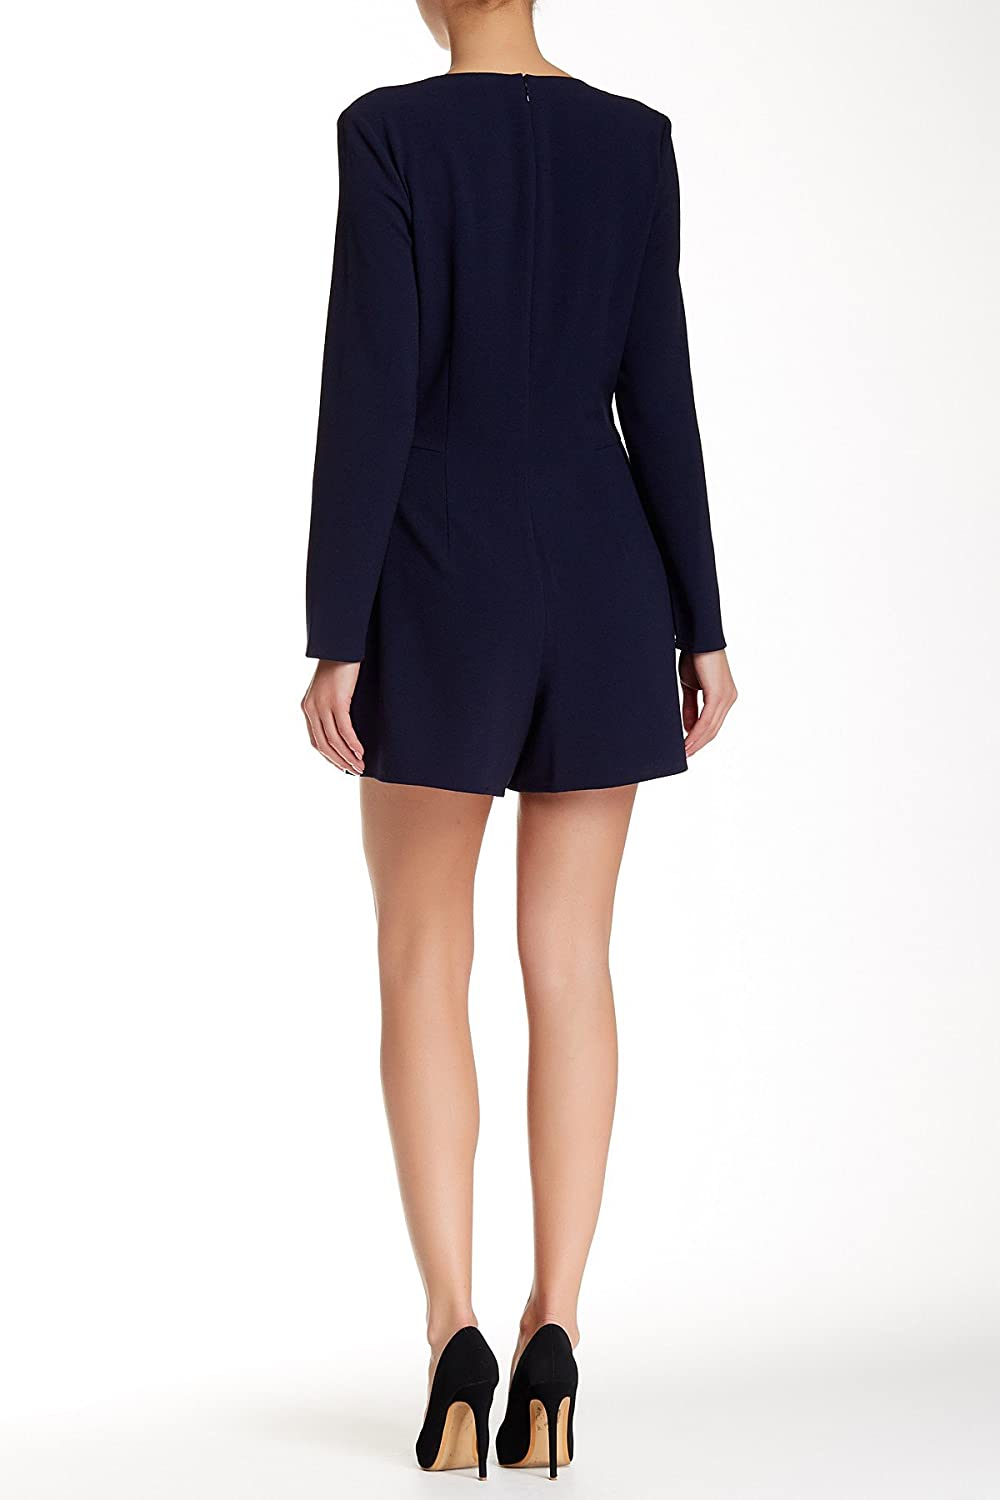 1.STATE Nightshade Navy Blue Wrap Front Long Sleeve Romper Size Large